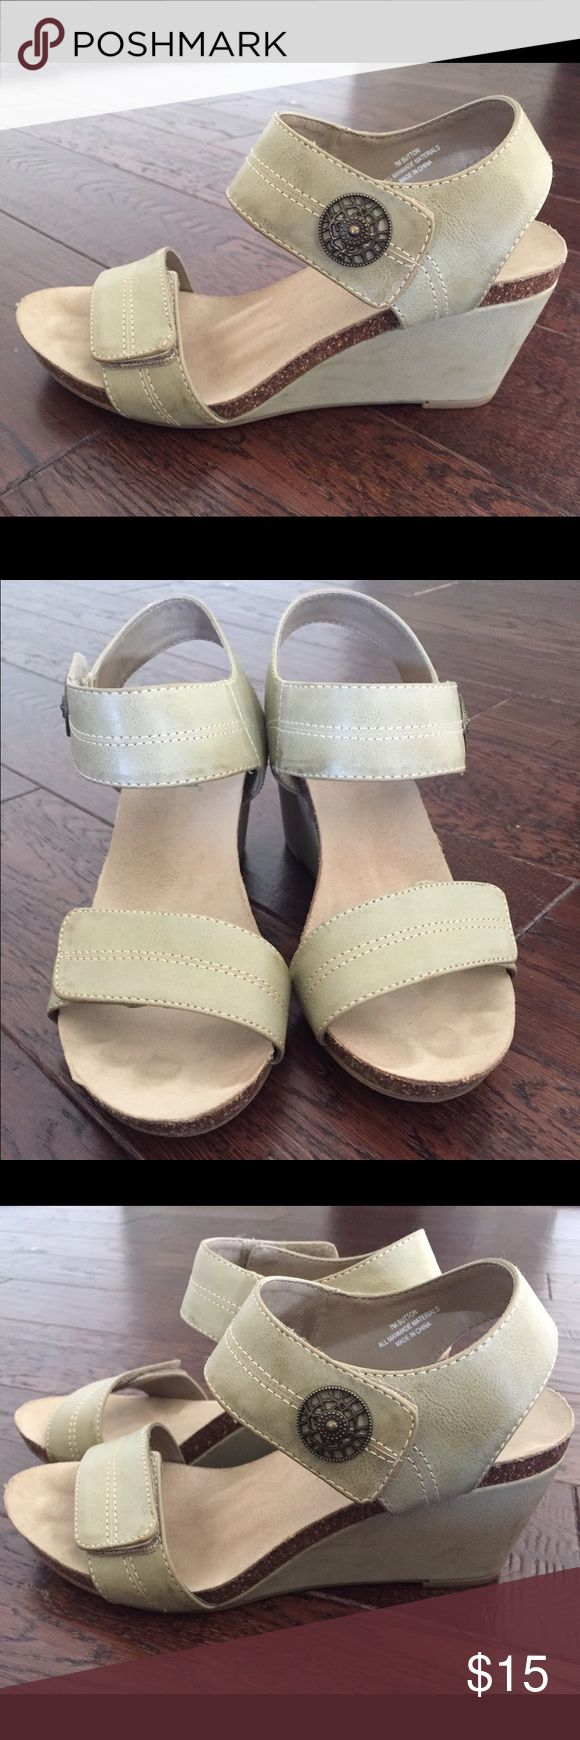 Muted mint green espadrille wedges Muted green espadrille wedge sandals. Velcro at toe strap and ankle strap. Comfortable, moldable sole. Very little wear (wore twice). Some scuffing on heels. Shoes Espadrilles